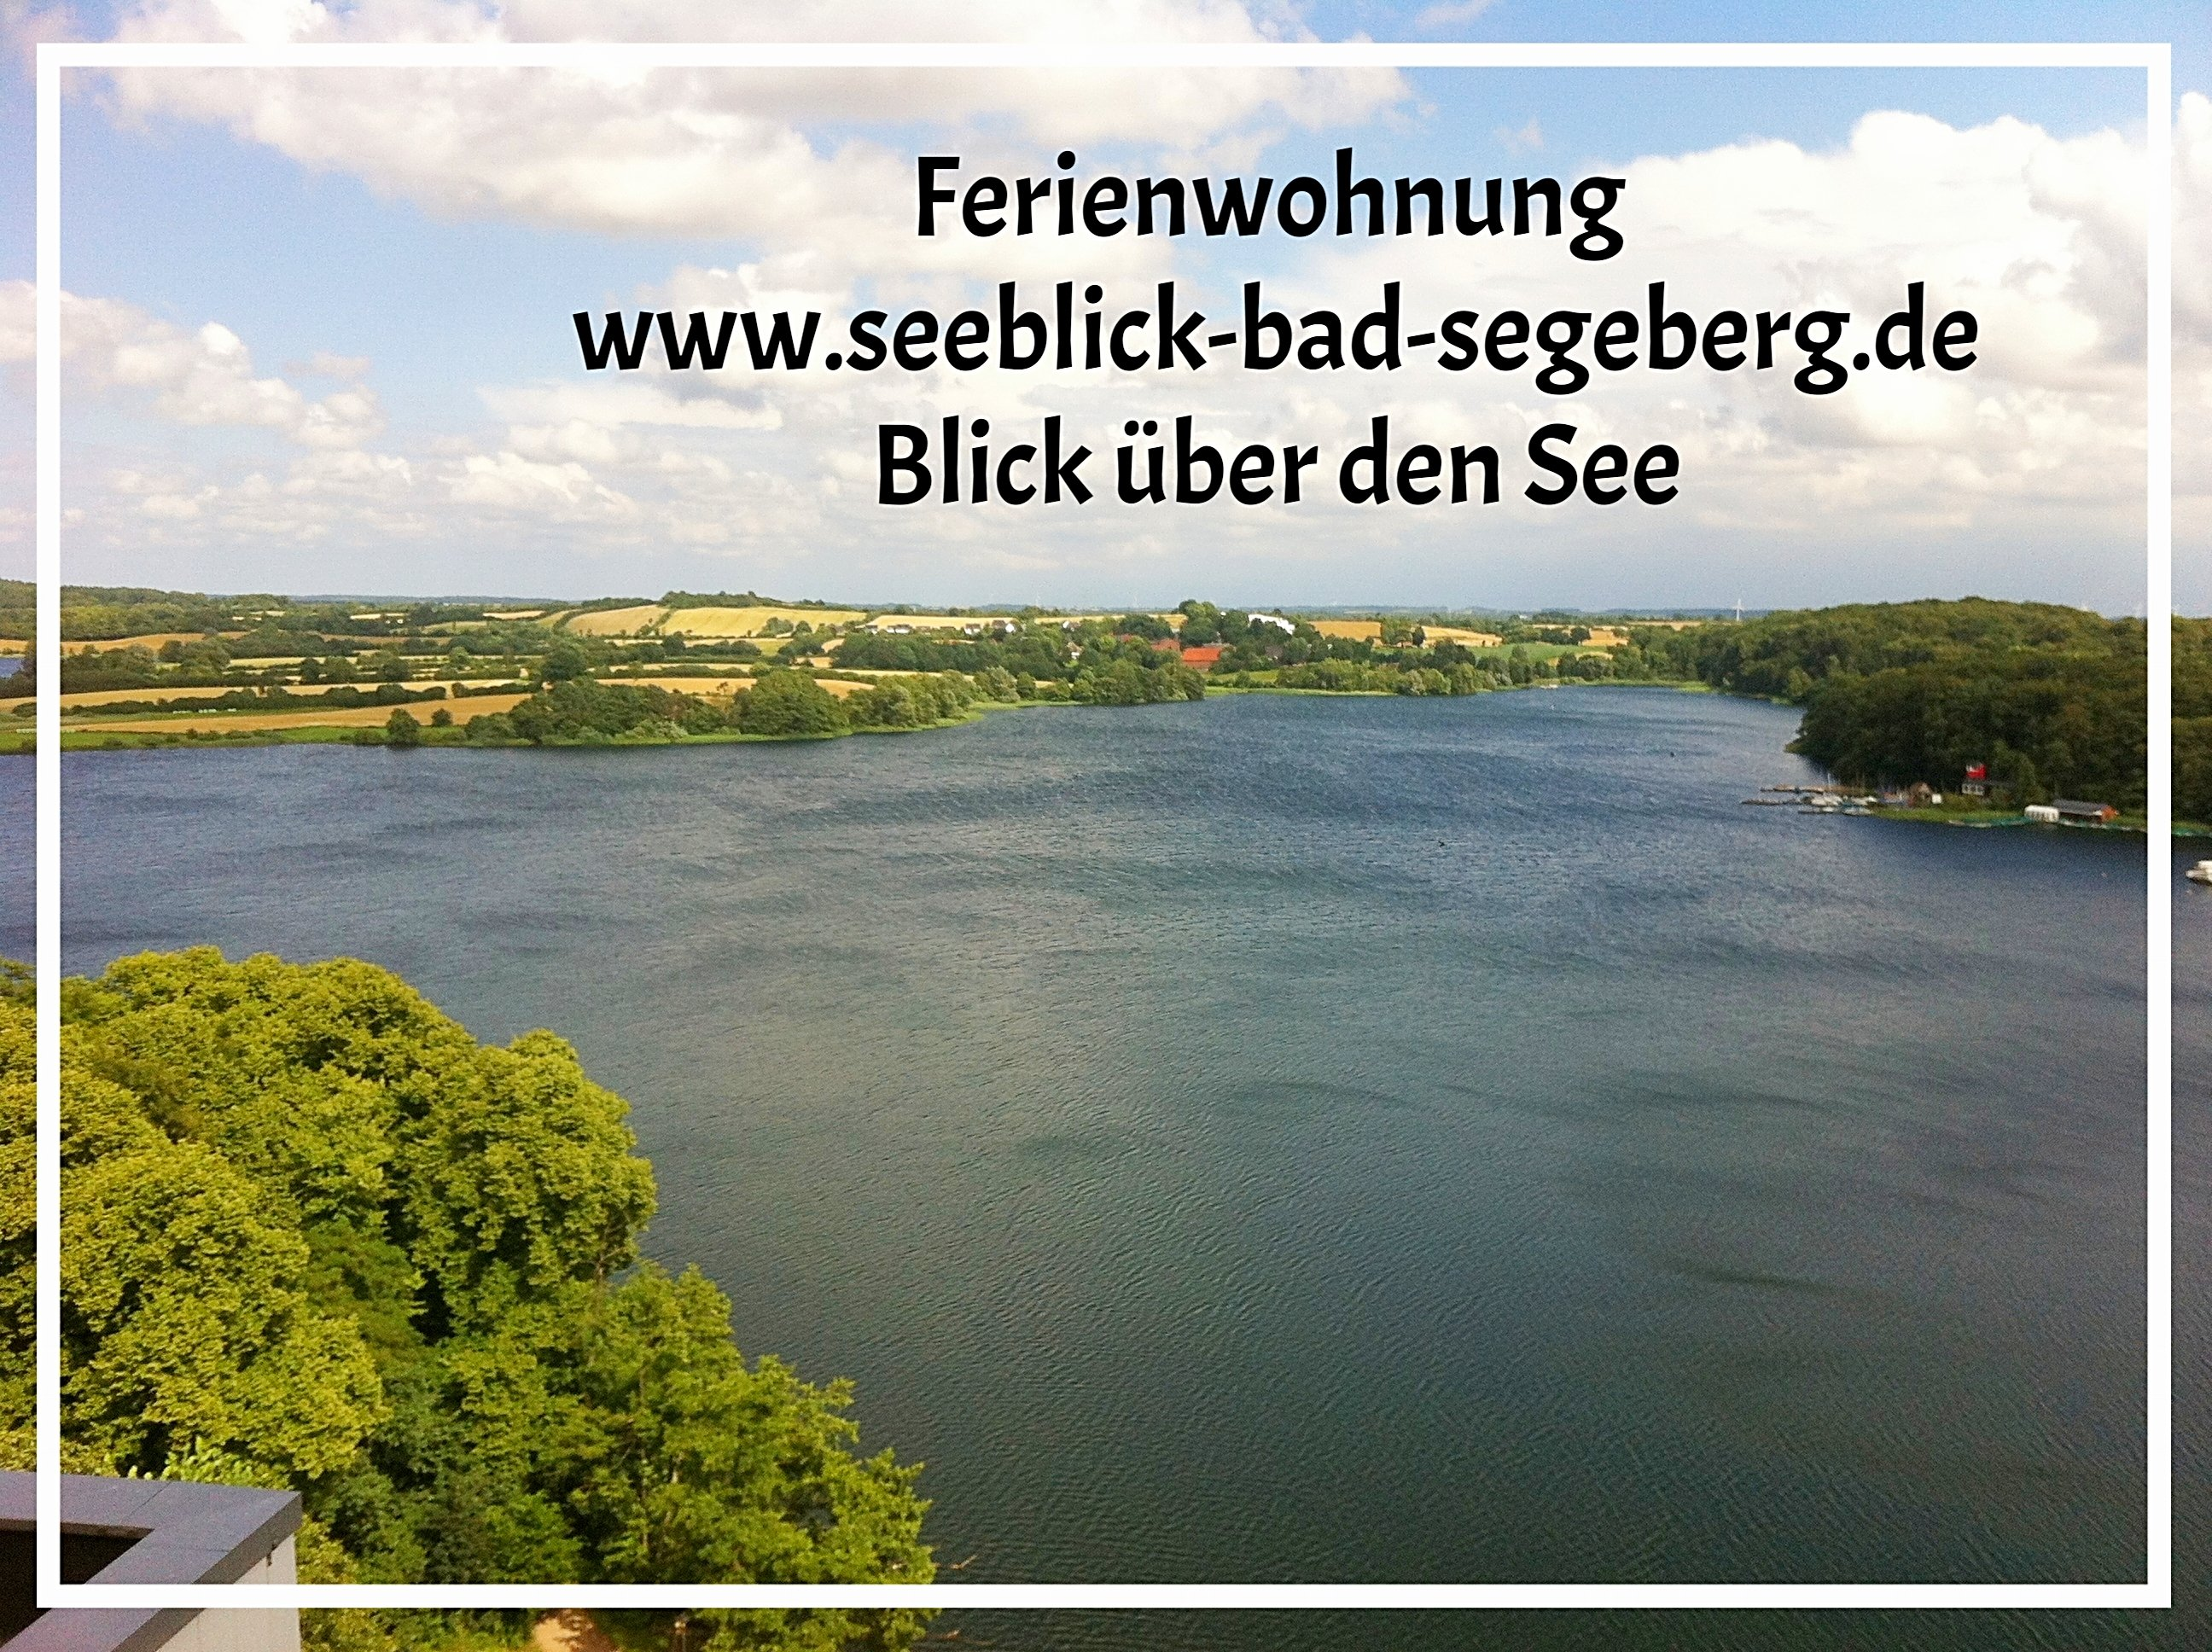 Single bad segeberg